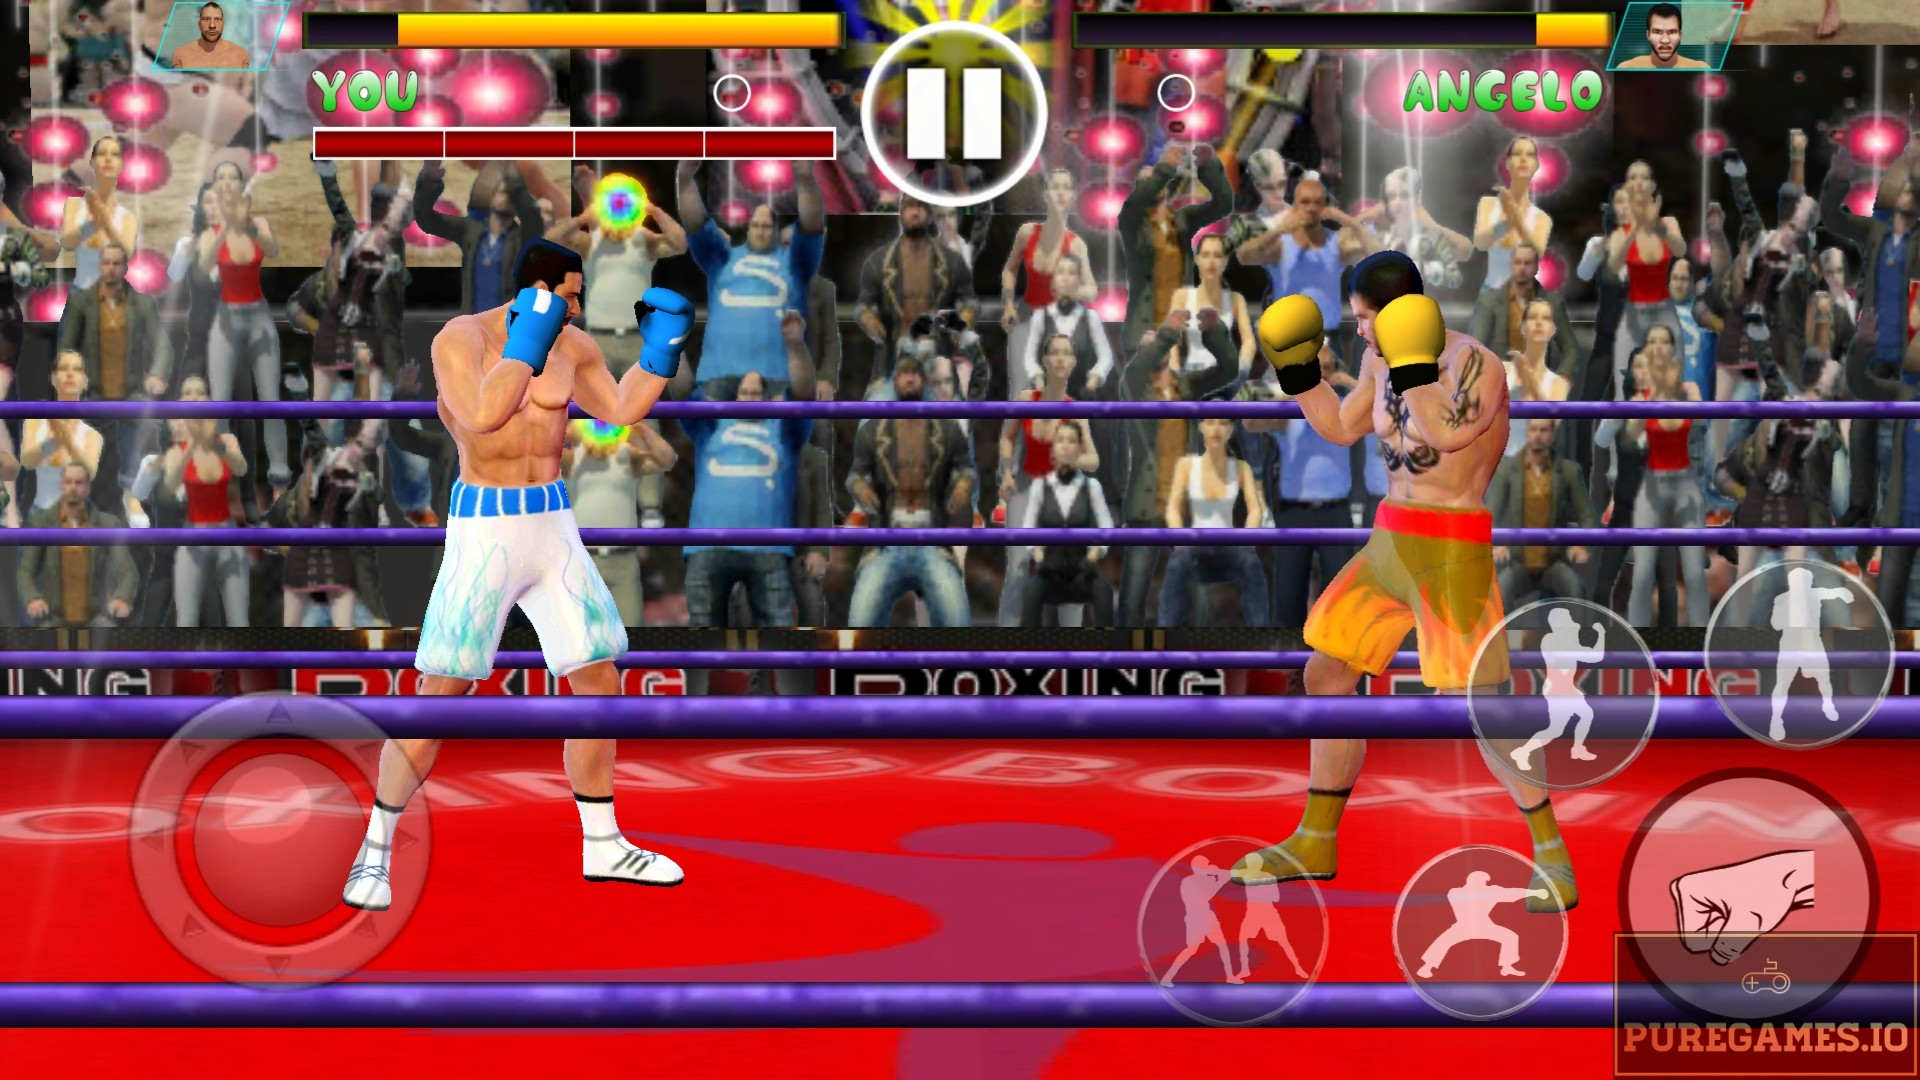 Download Ninja Punch Boxing Warrior: Kung Fu Karate Fighter APK - For Android 23